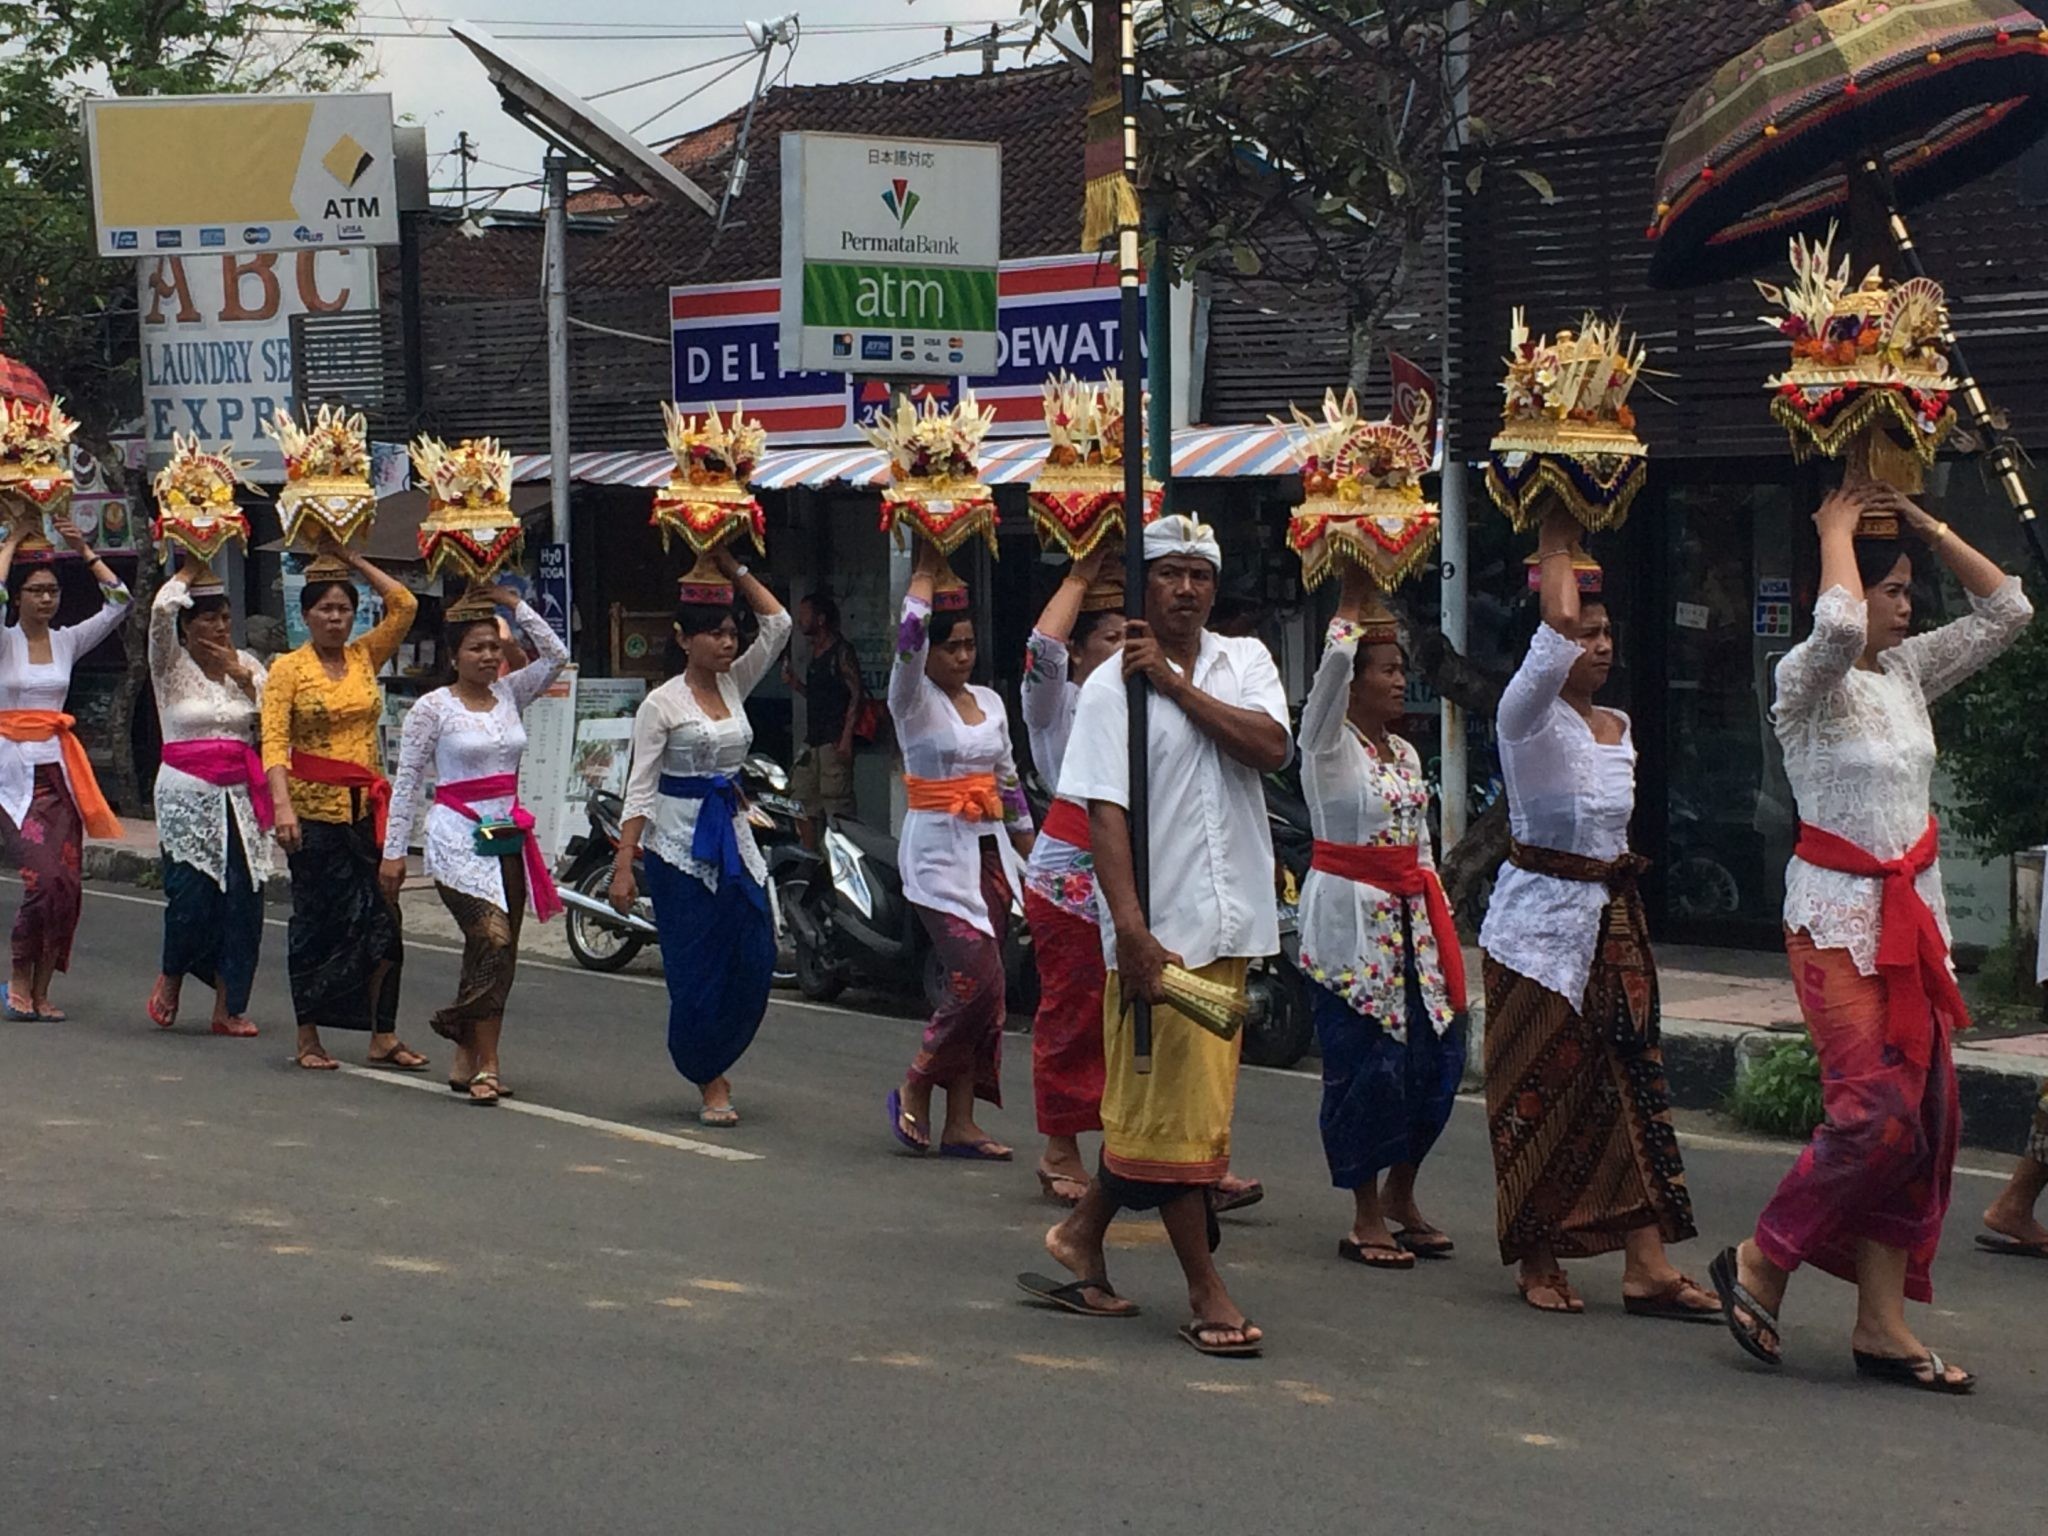 March towards the temple in traditional dress